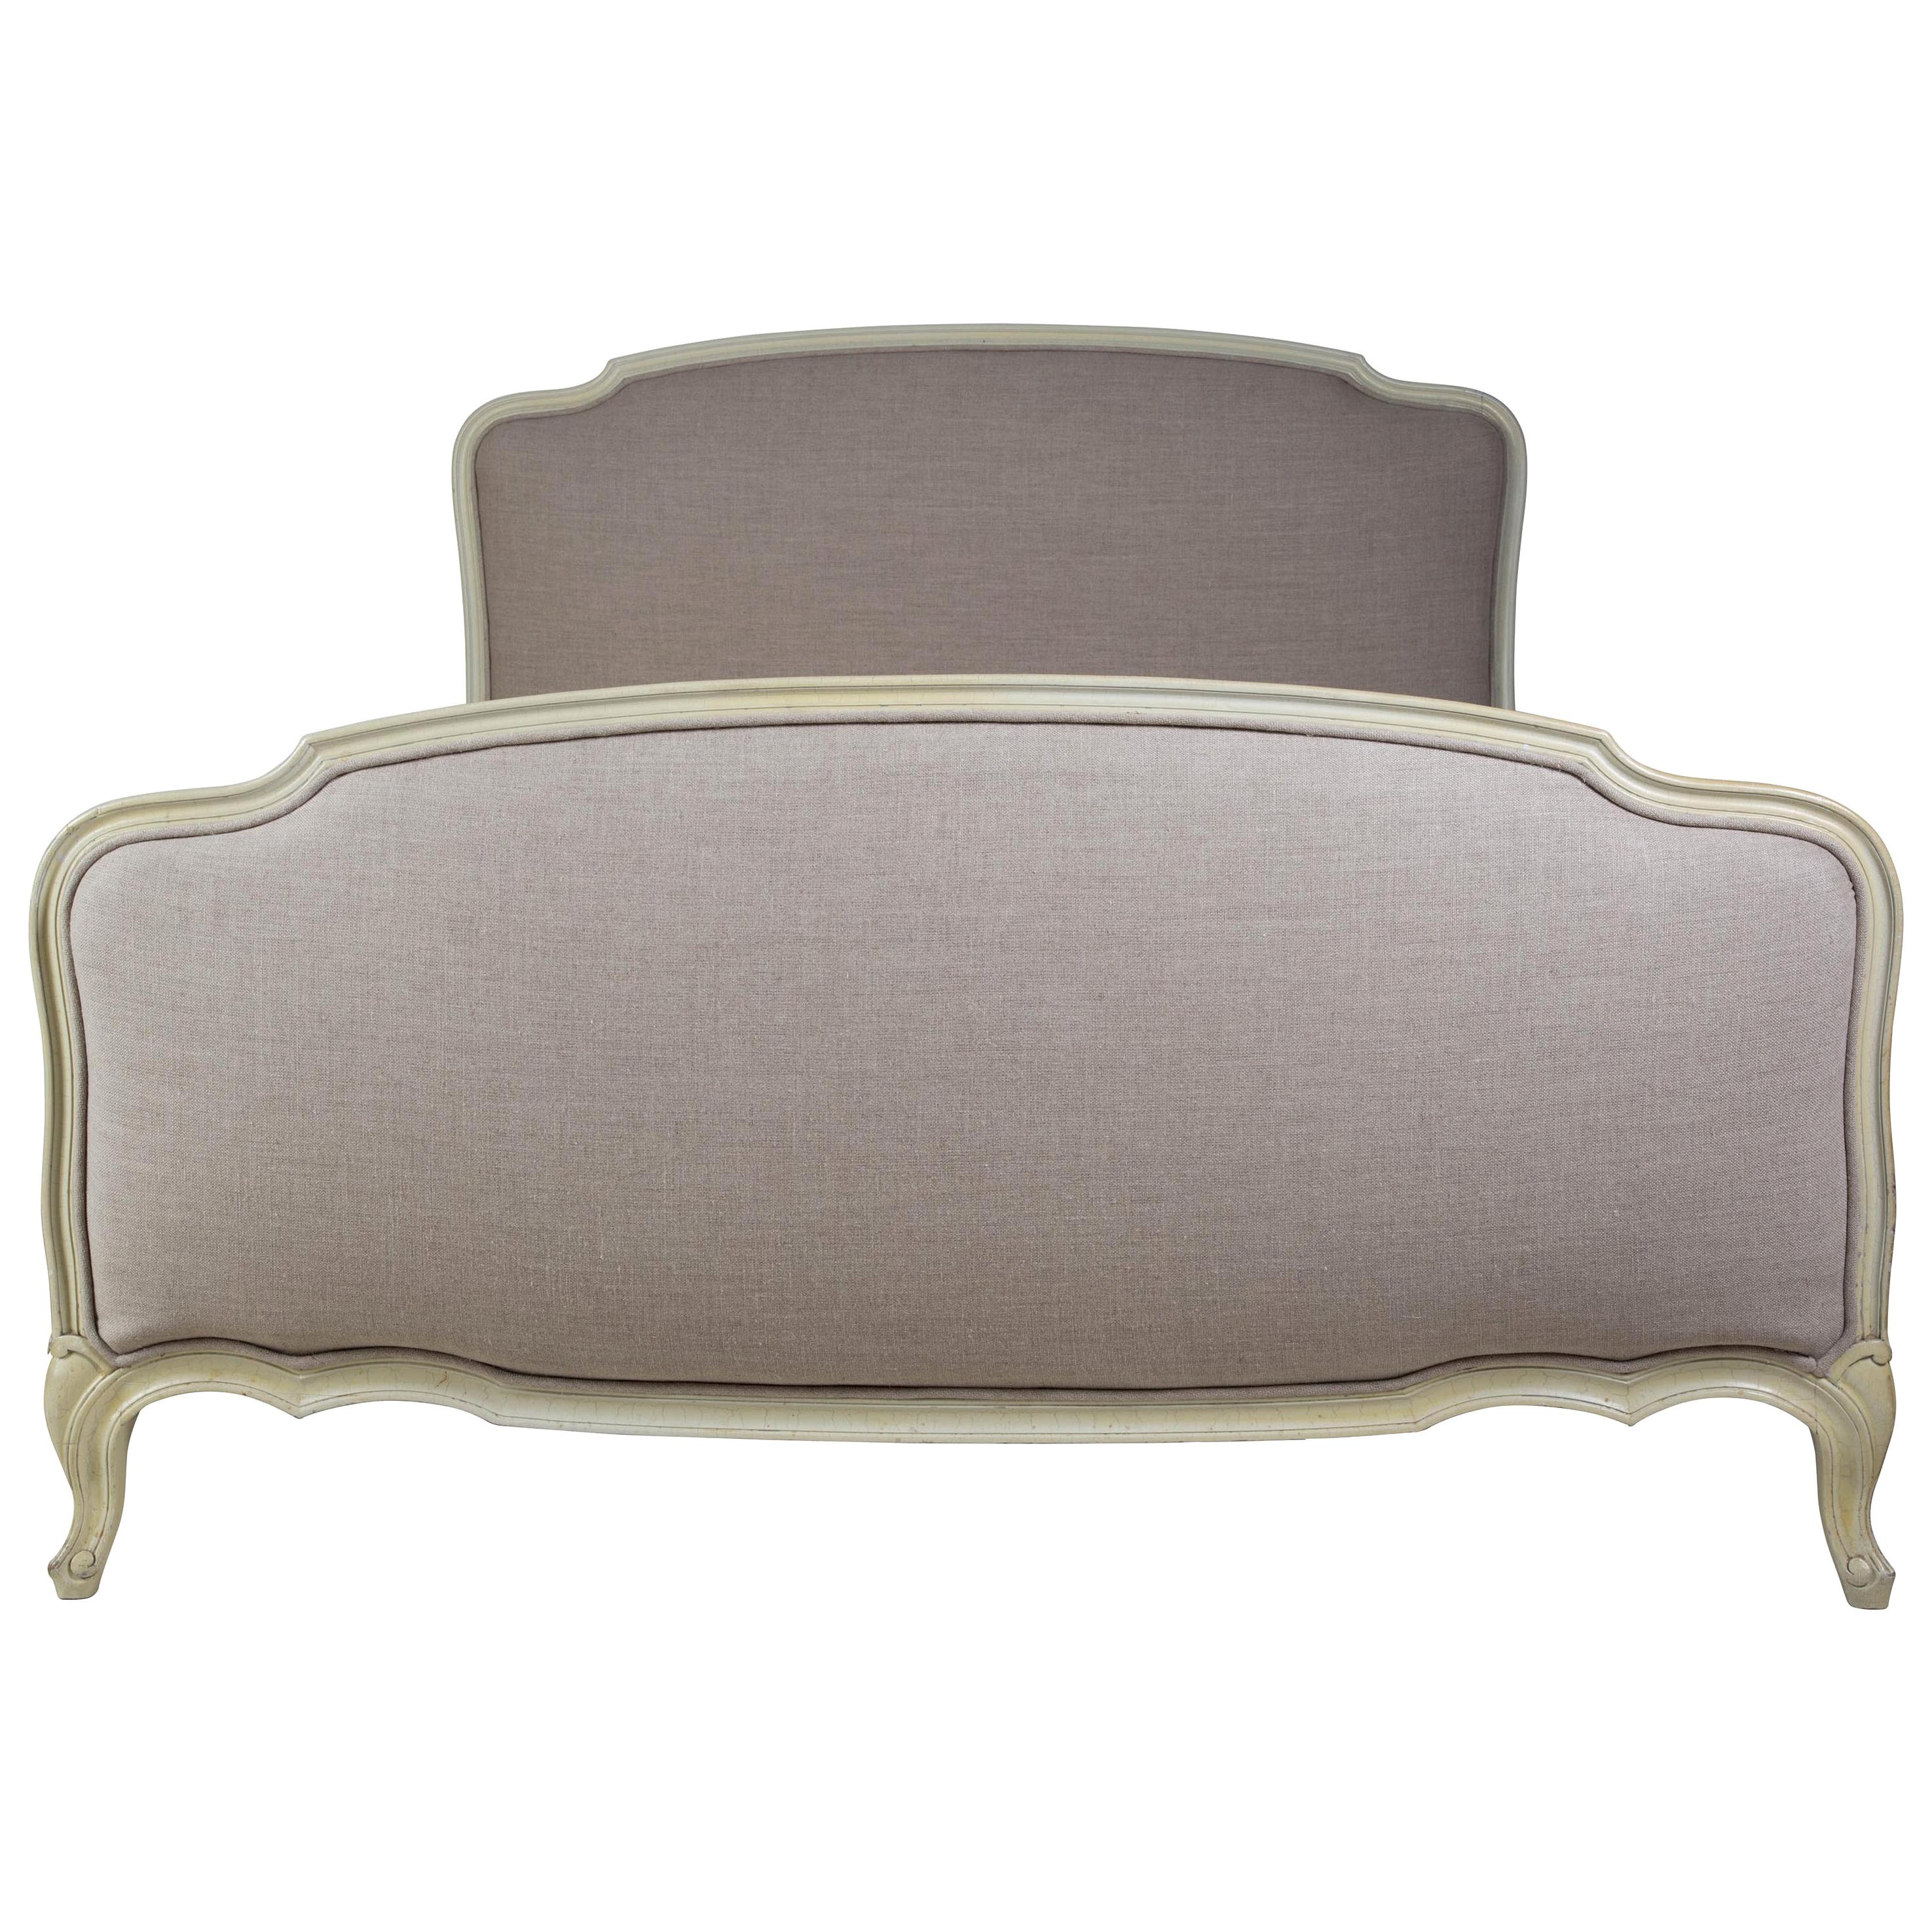 Painted French Double Bed